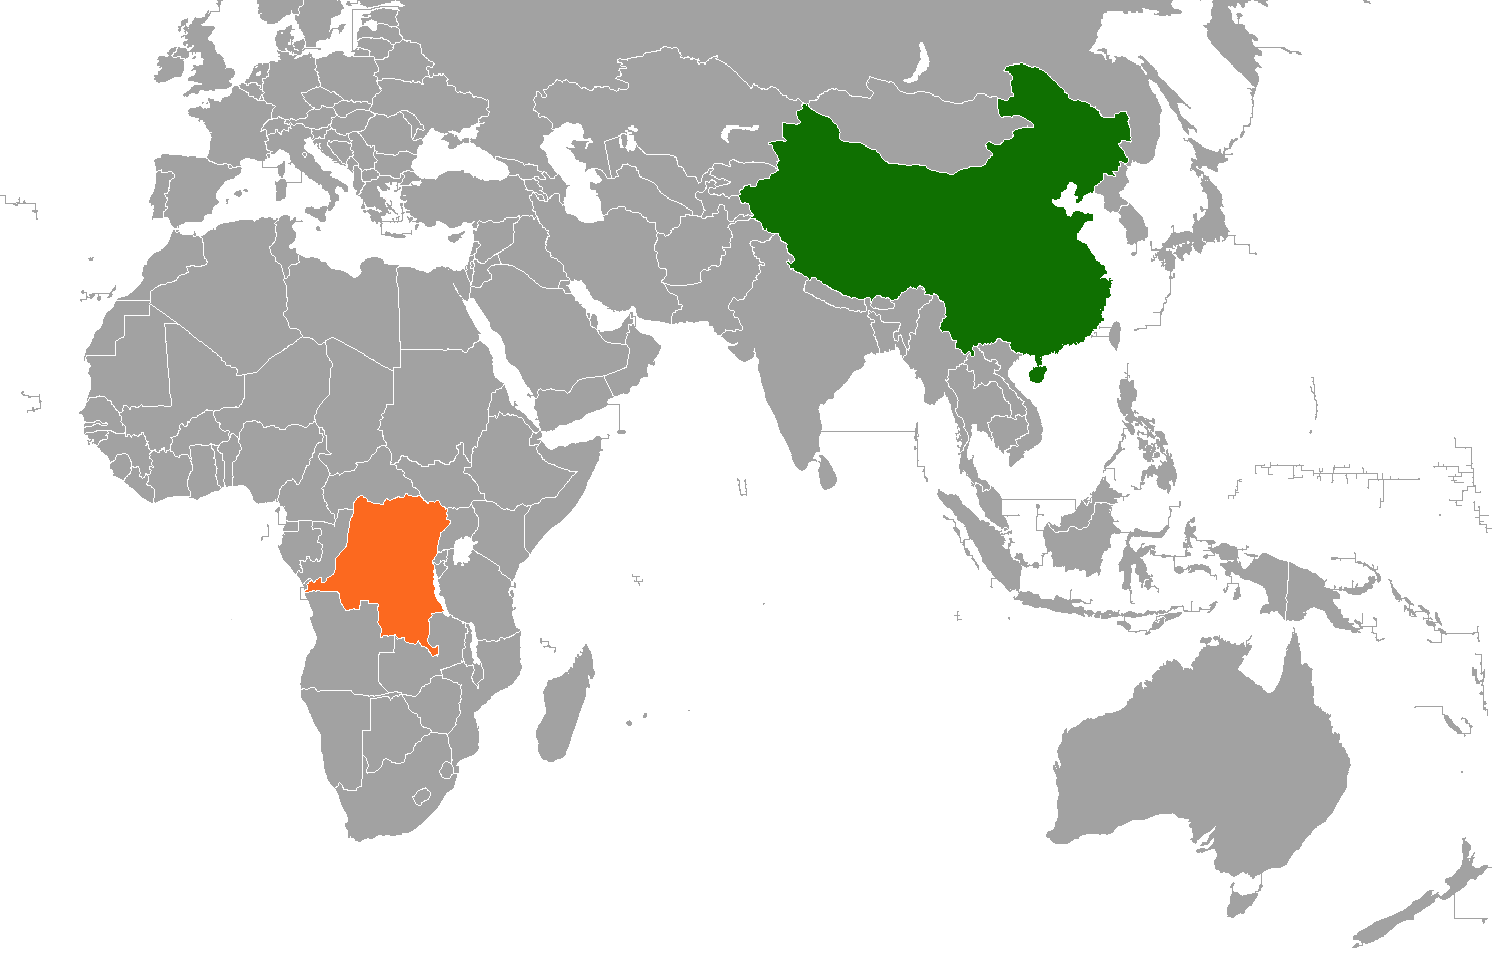 ChinaDemocratic Republic of the Congo relations Wikipedia